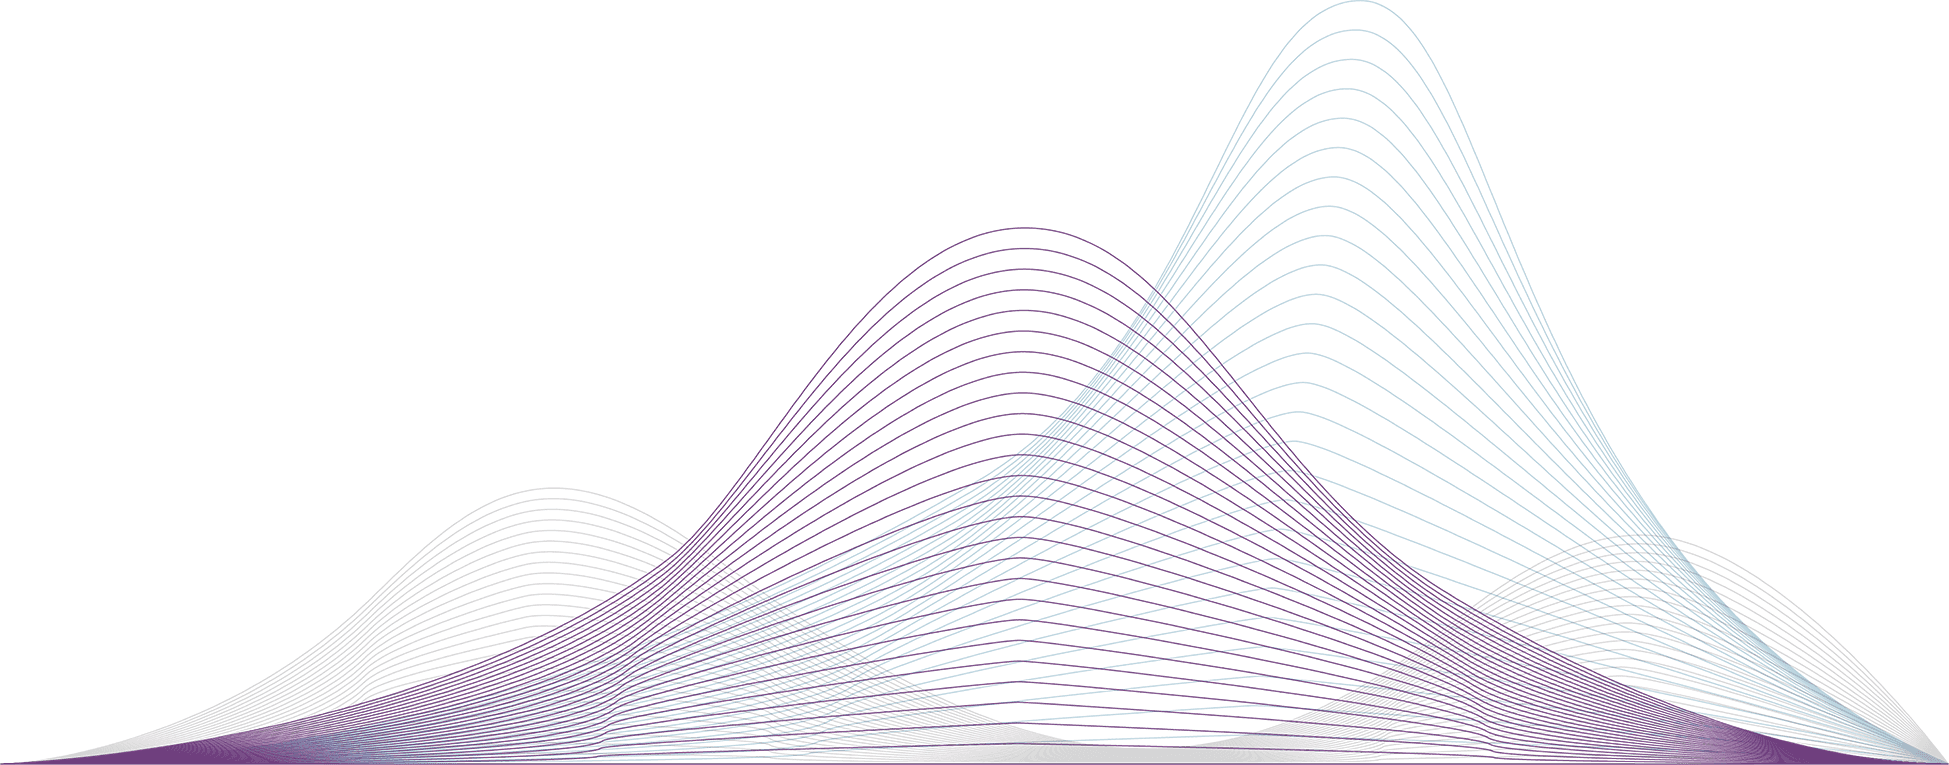 Waves Graph